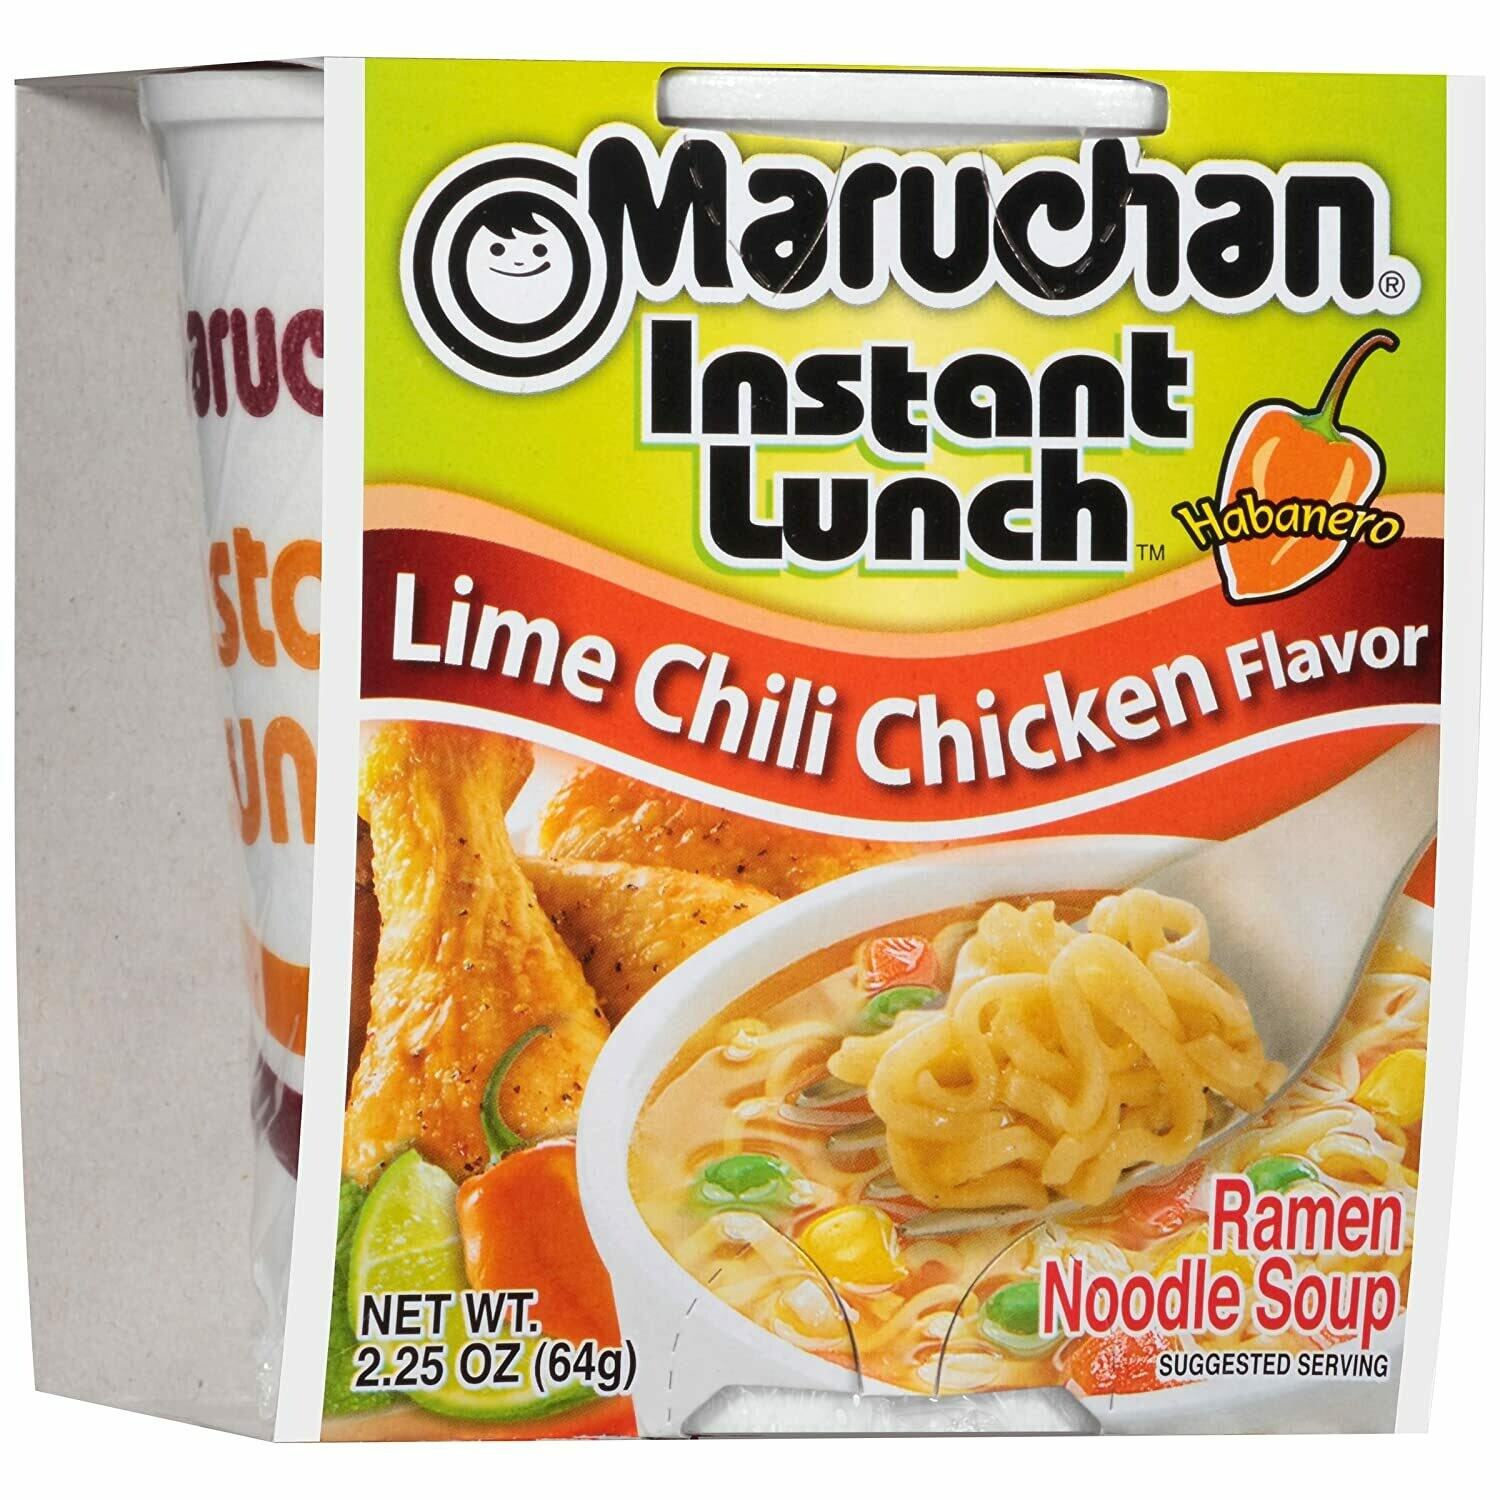 Maruchan Lime Chili Chicken 64g